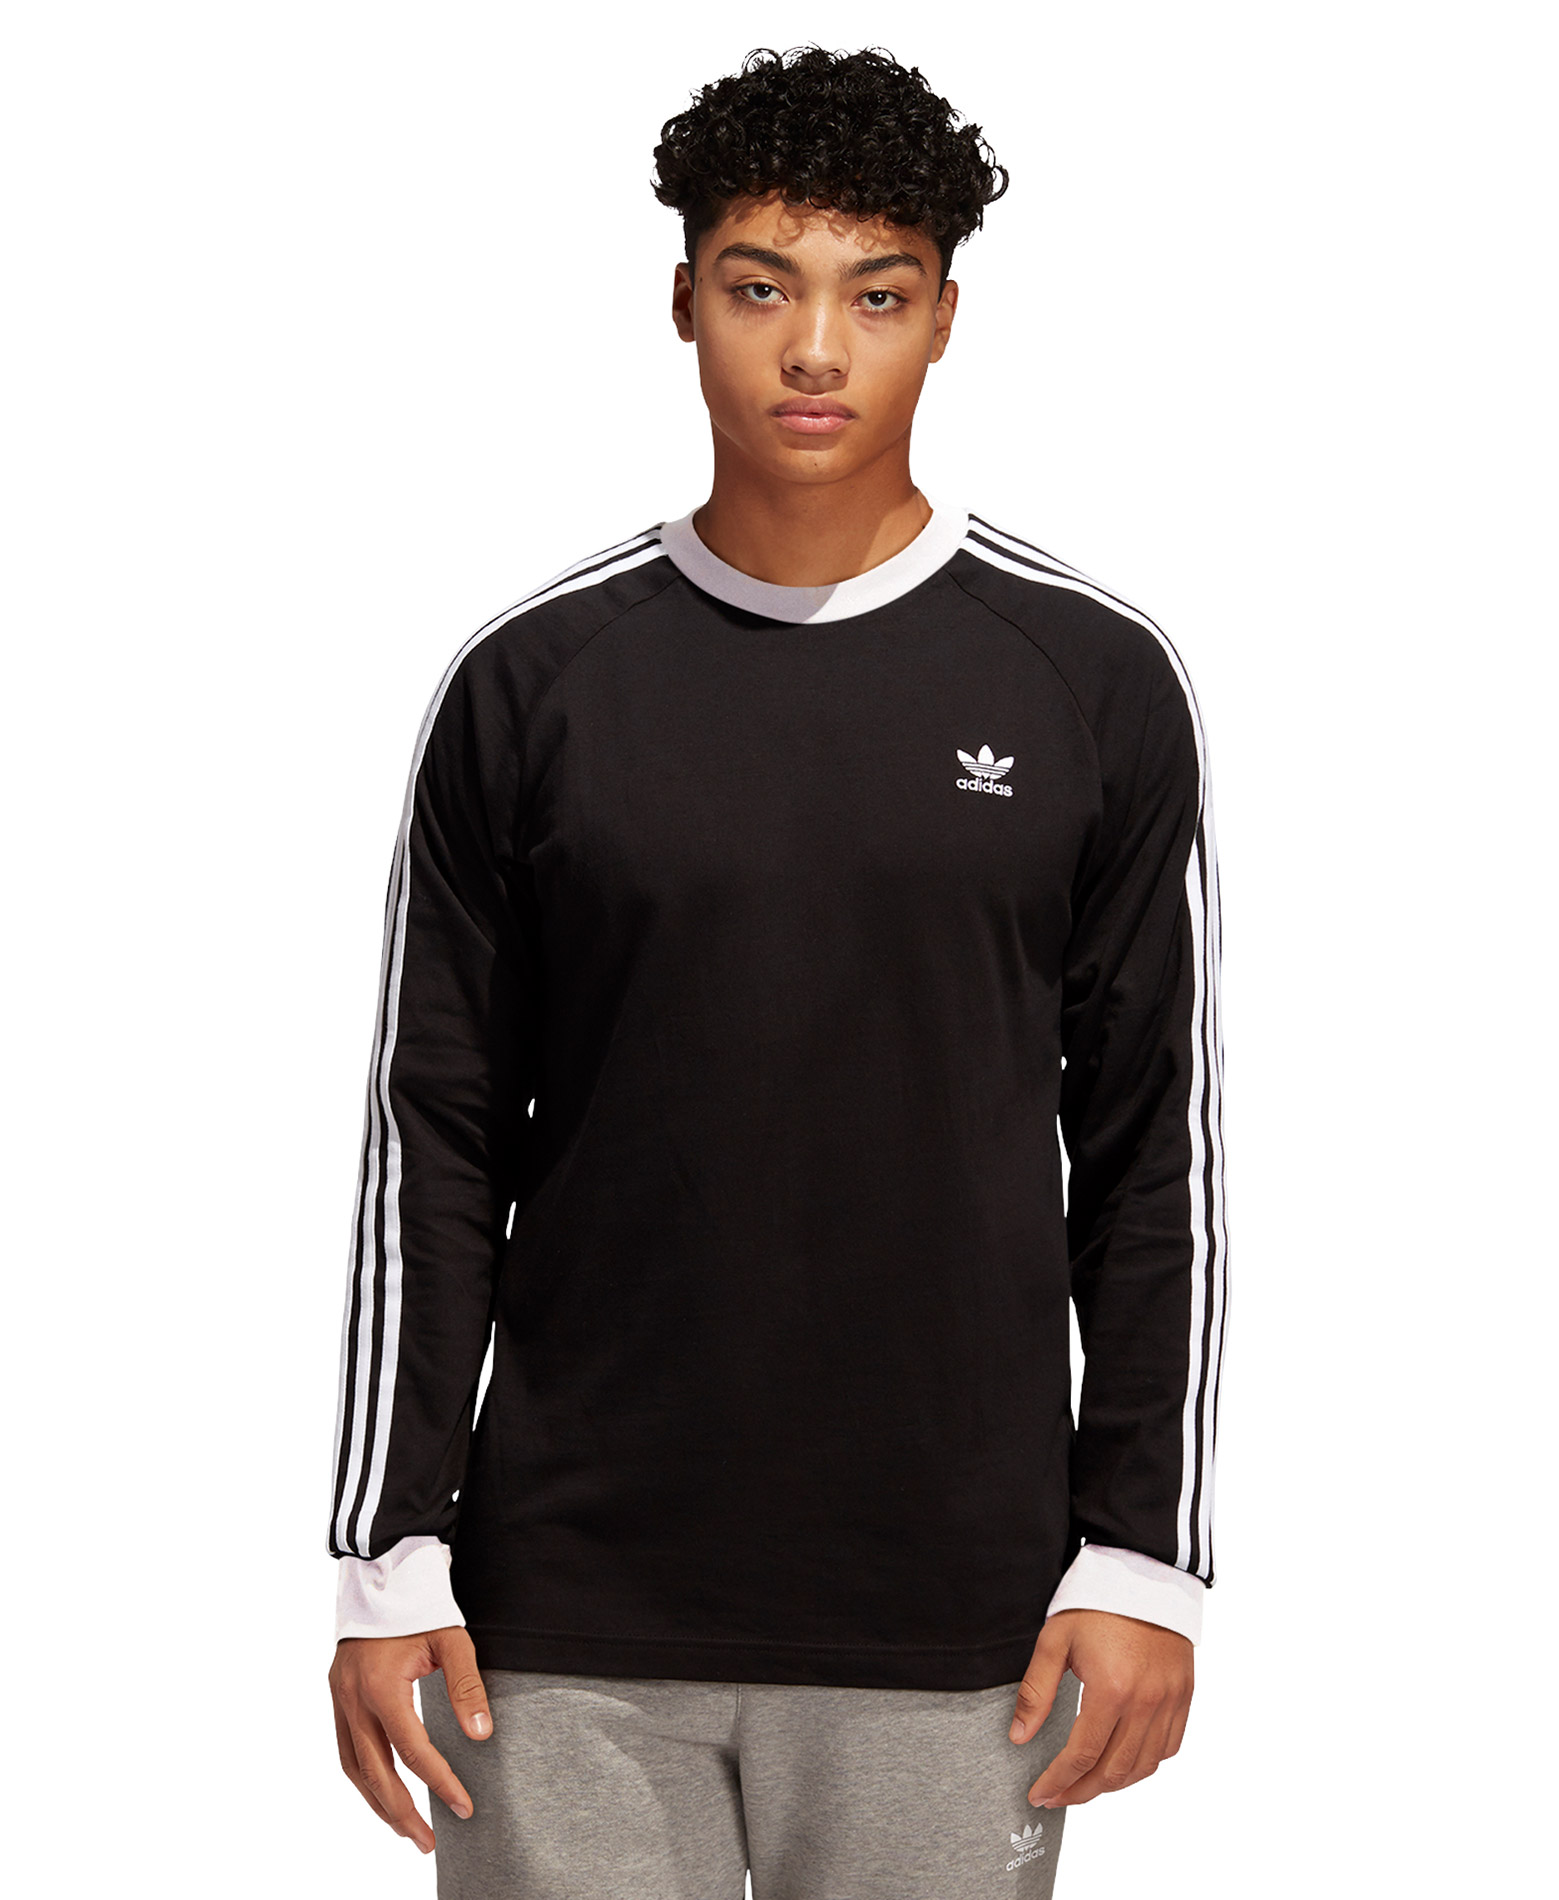 adidas Originals 3-STRIPES LS T DV1560 Μαύρο ... 7f8030a3870